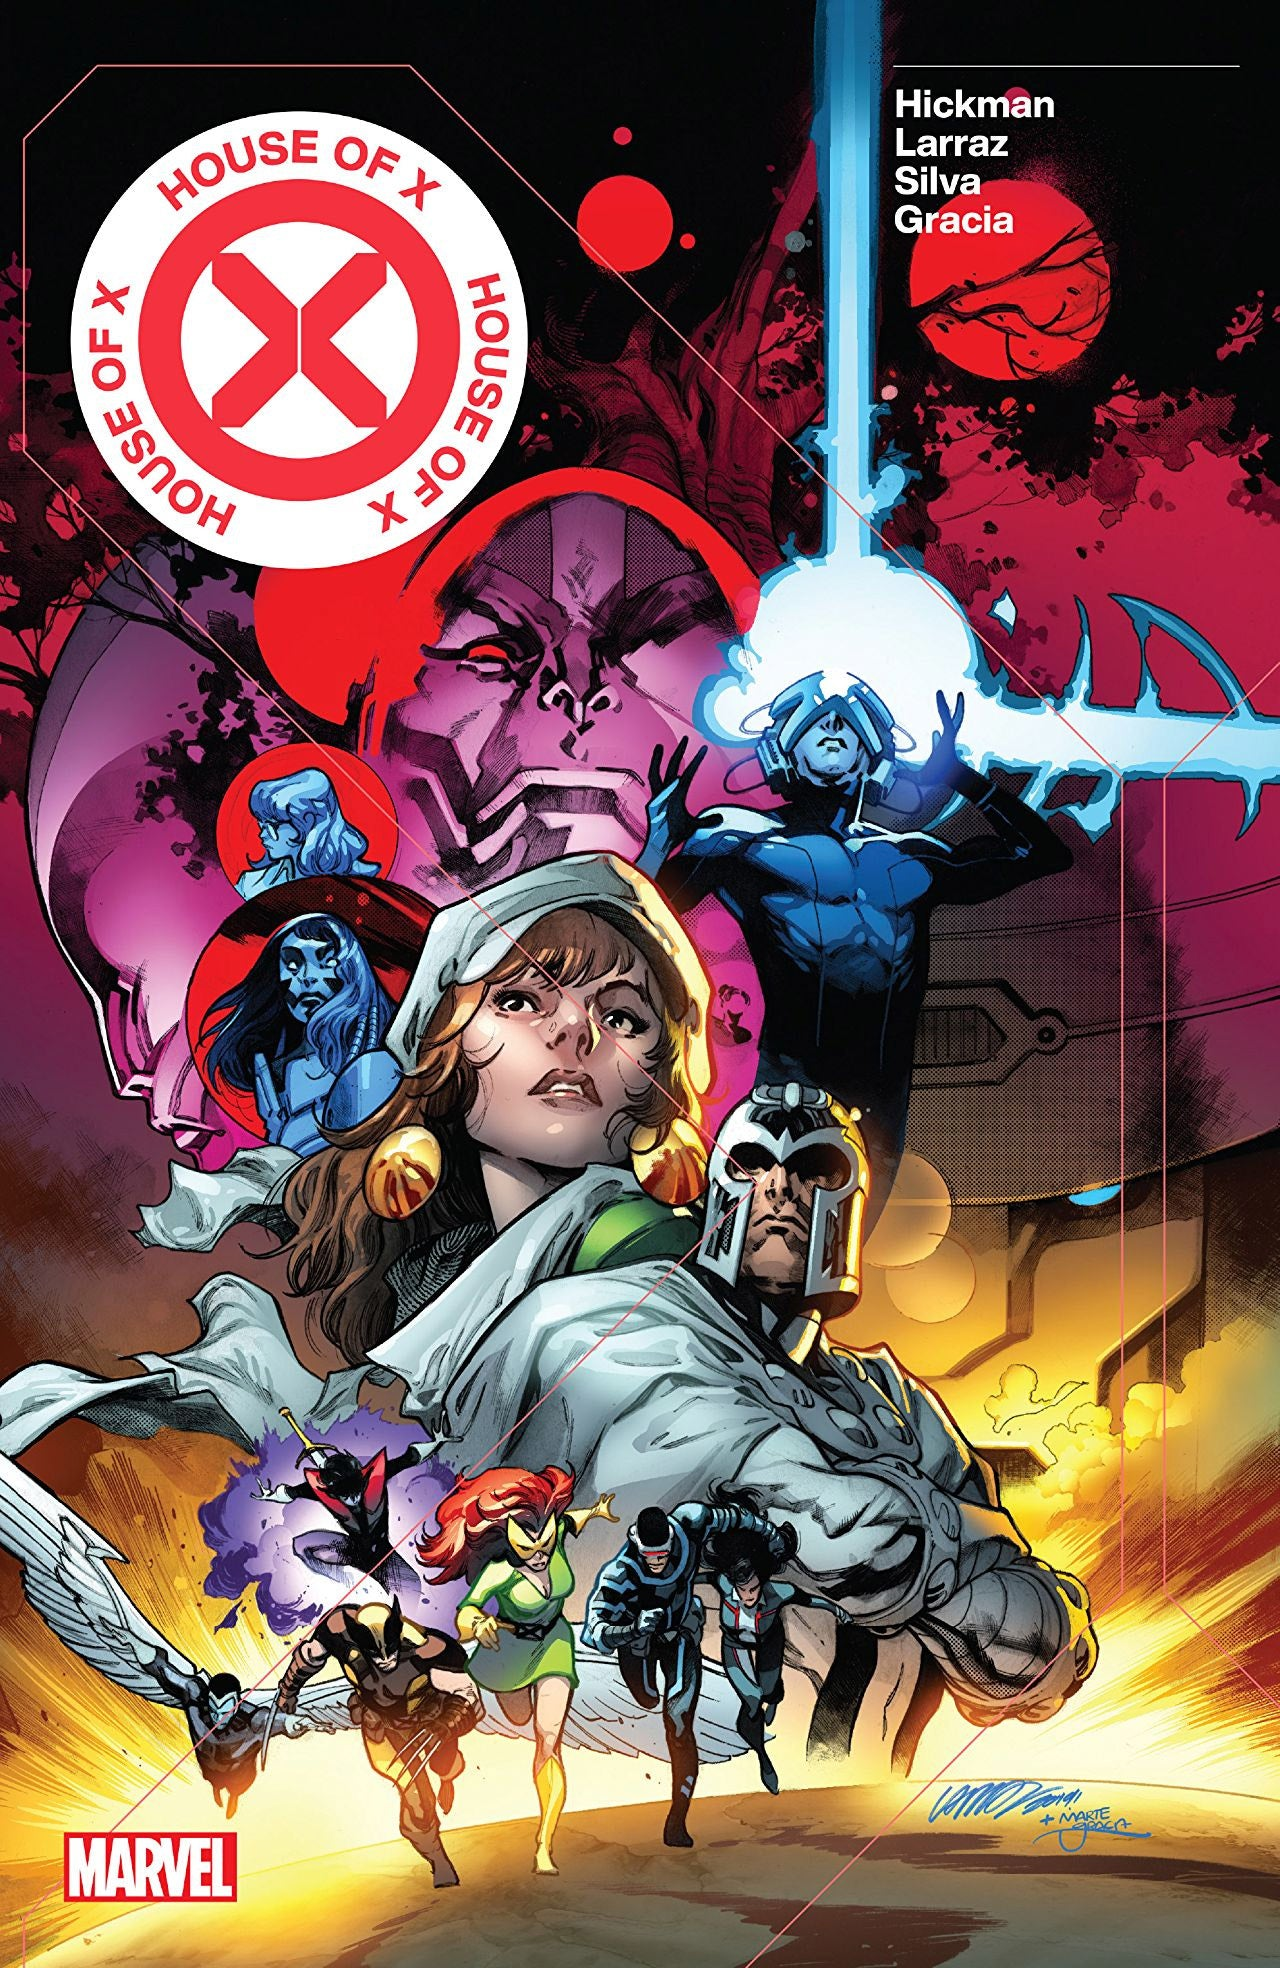 HOUSE OF X POWERS OF X HC | Phoenix Comics and Games